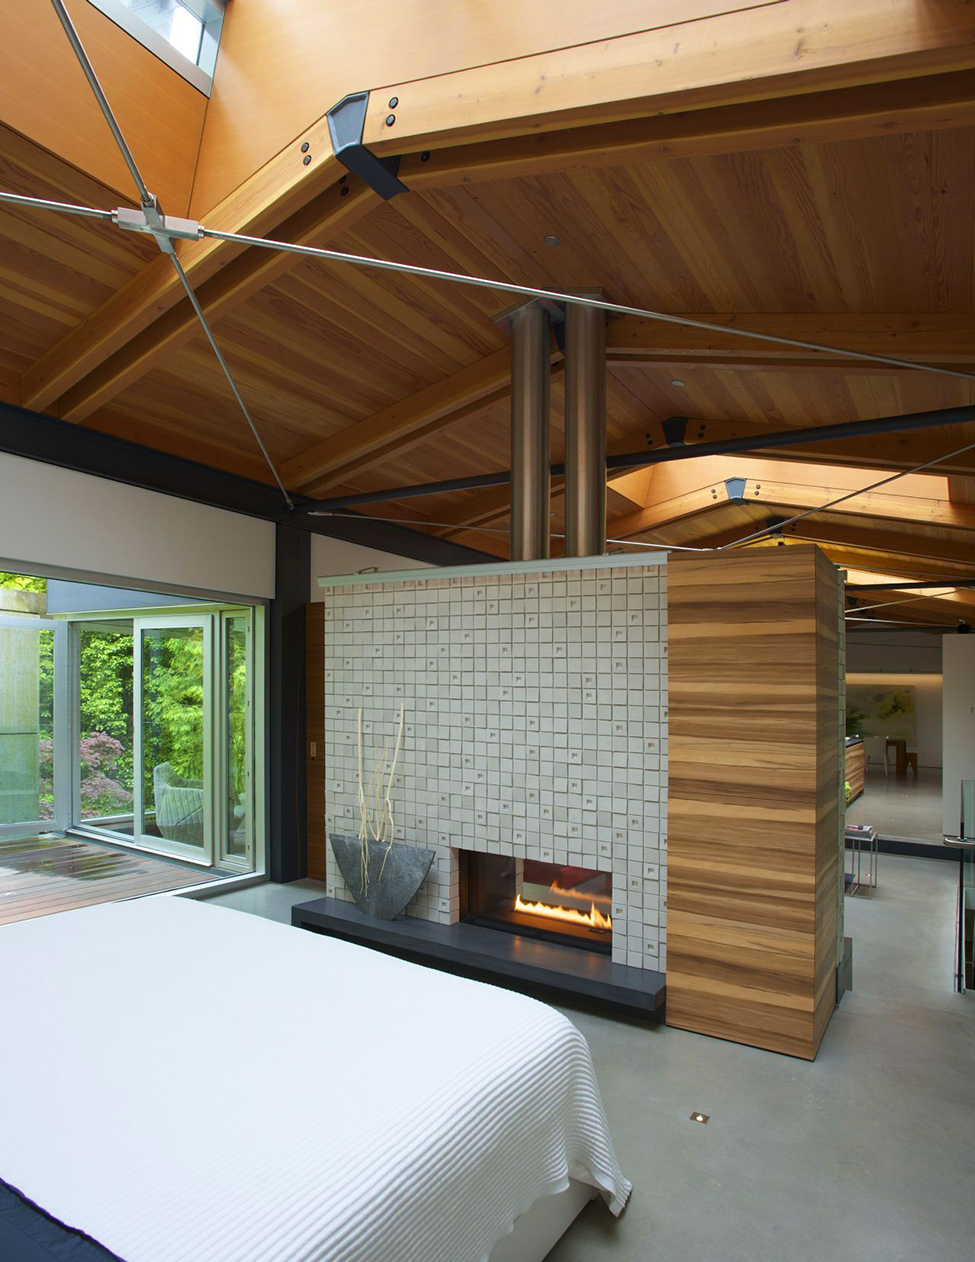 Fireplace-in-the-Bedroom